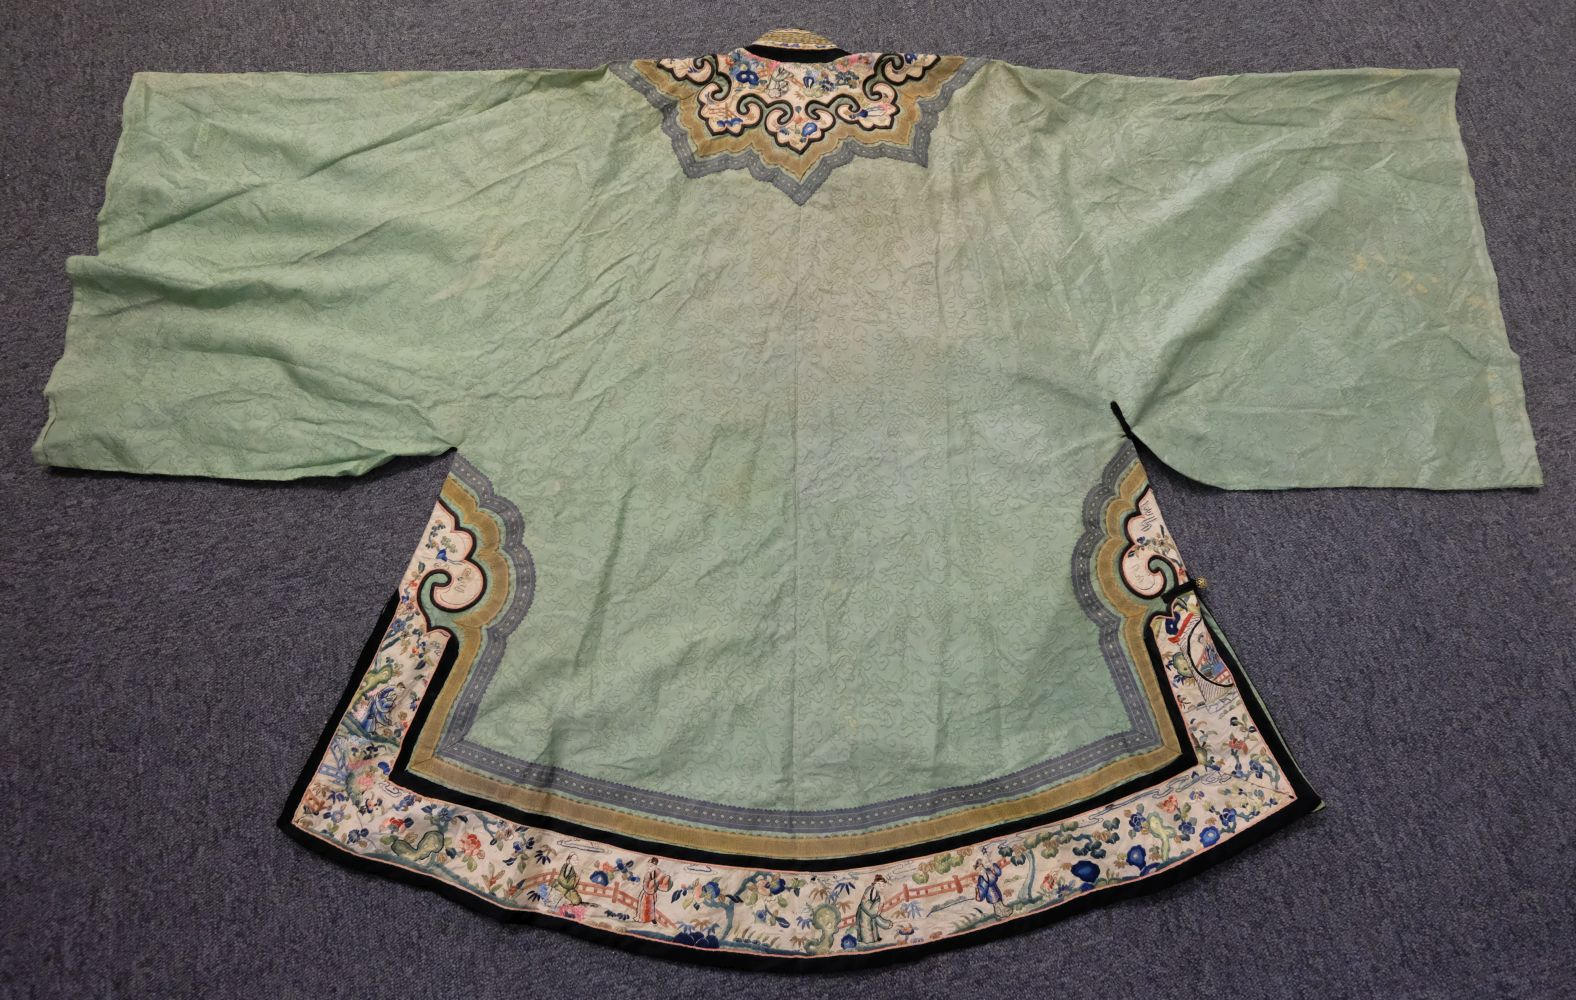 * Chinese. A late Qing Dynasty silk robe, 19th century, - Image 3 of 3